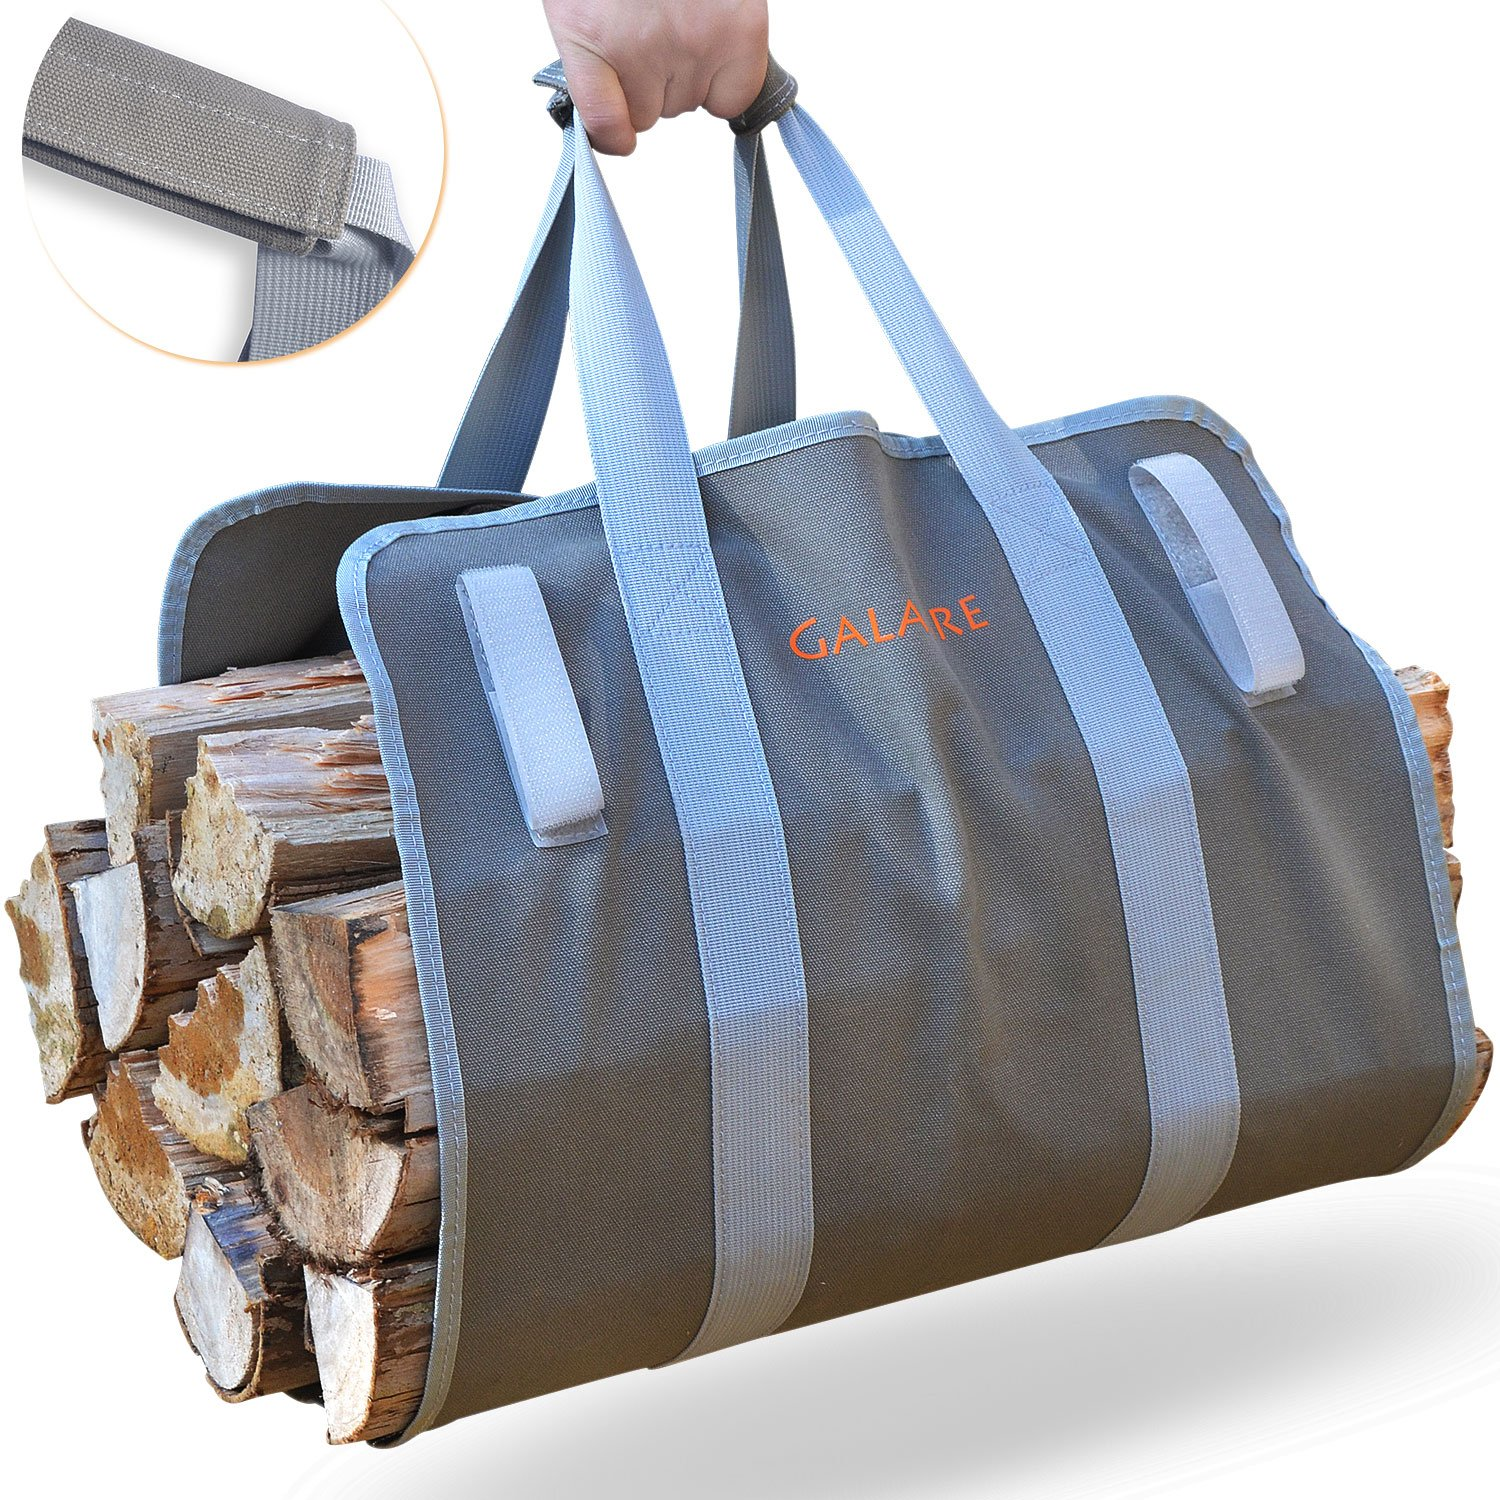 GALAFIRE Premium Quality Supersized Firewood Carrier Log Tote Heavy 16oz Canvas Comfortable Padded Handles Foldable with Hook and Loop by GALAFIRE